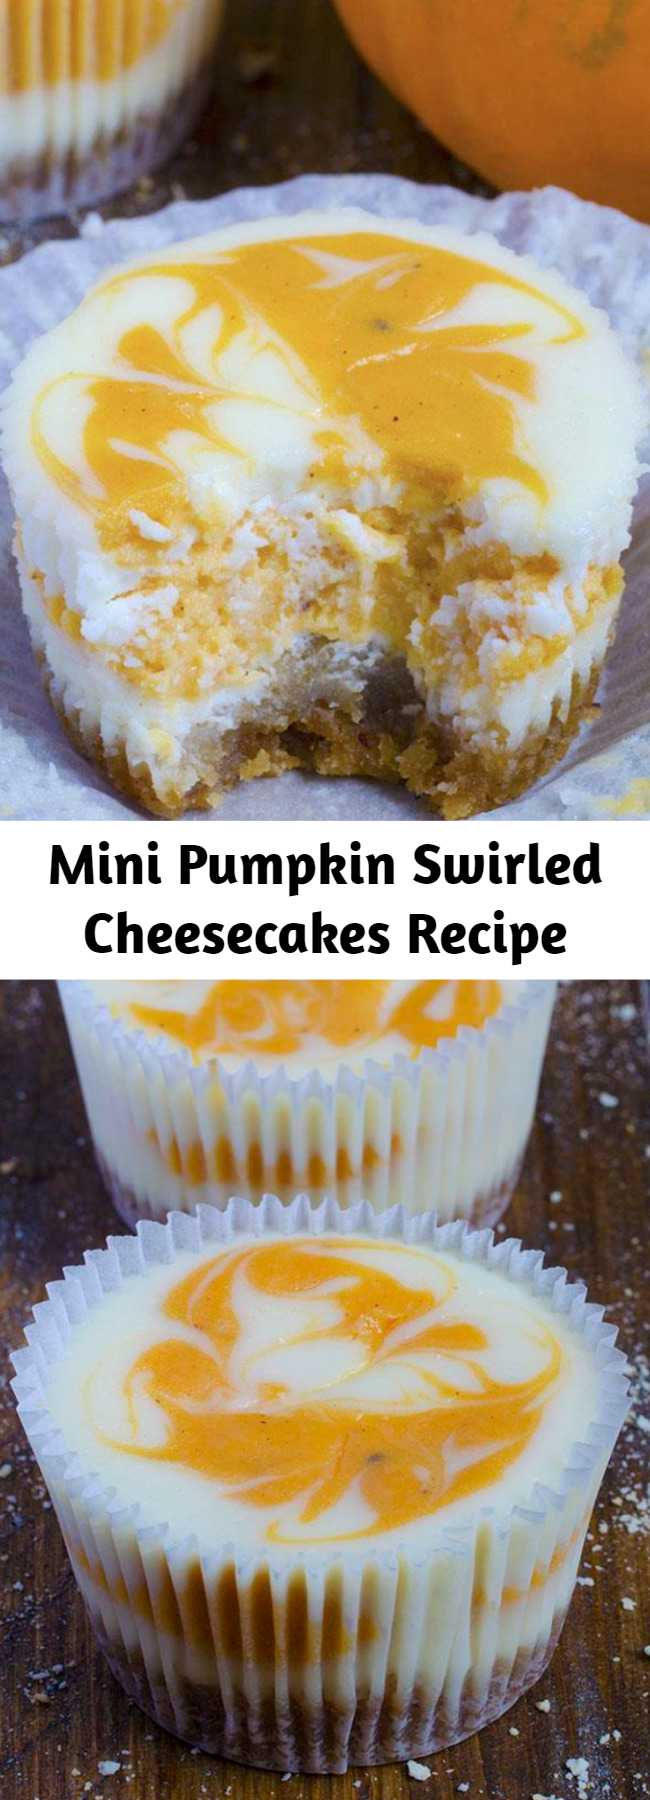 Mini Pumpkin Swirled Cheesecakes Recipe - I always adore sweet cheesecake bites but with pumpkin I got more than I expect! These gorgeous Mini Pumpkin Swirled Cheesecakes are the best homemade treat to satisfy your fall flavor cravings. Perfectly swirled and spiced for a delicious pumpkin dessert!